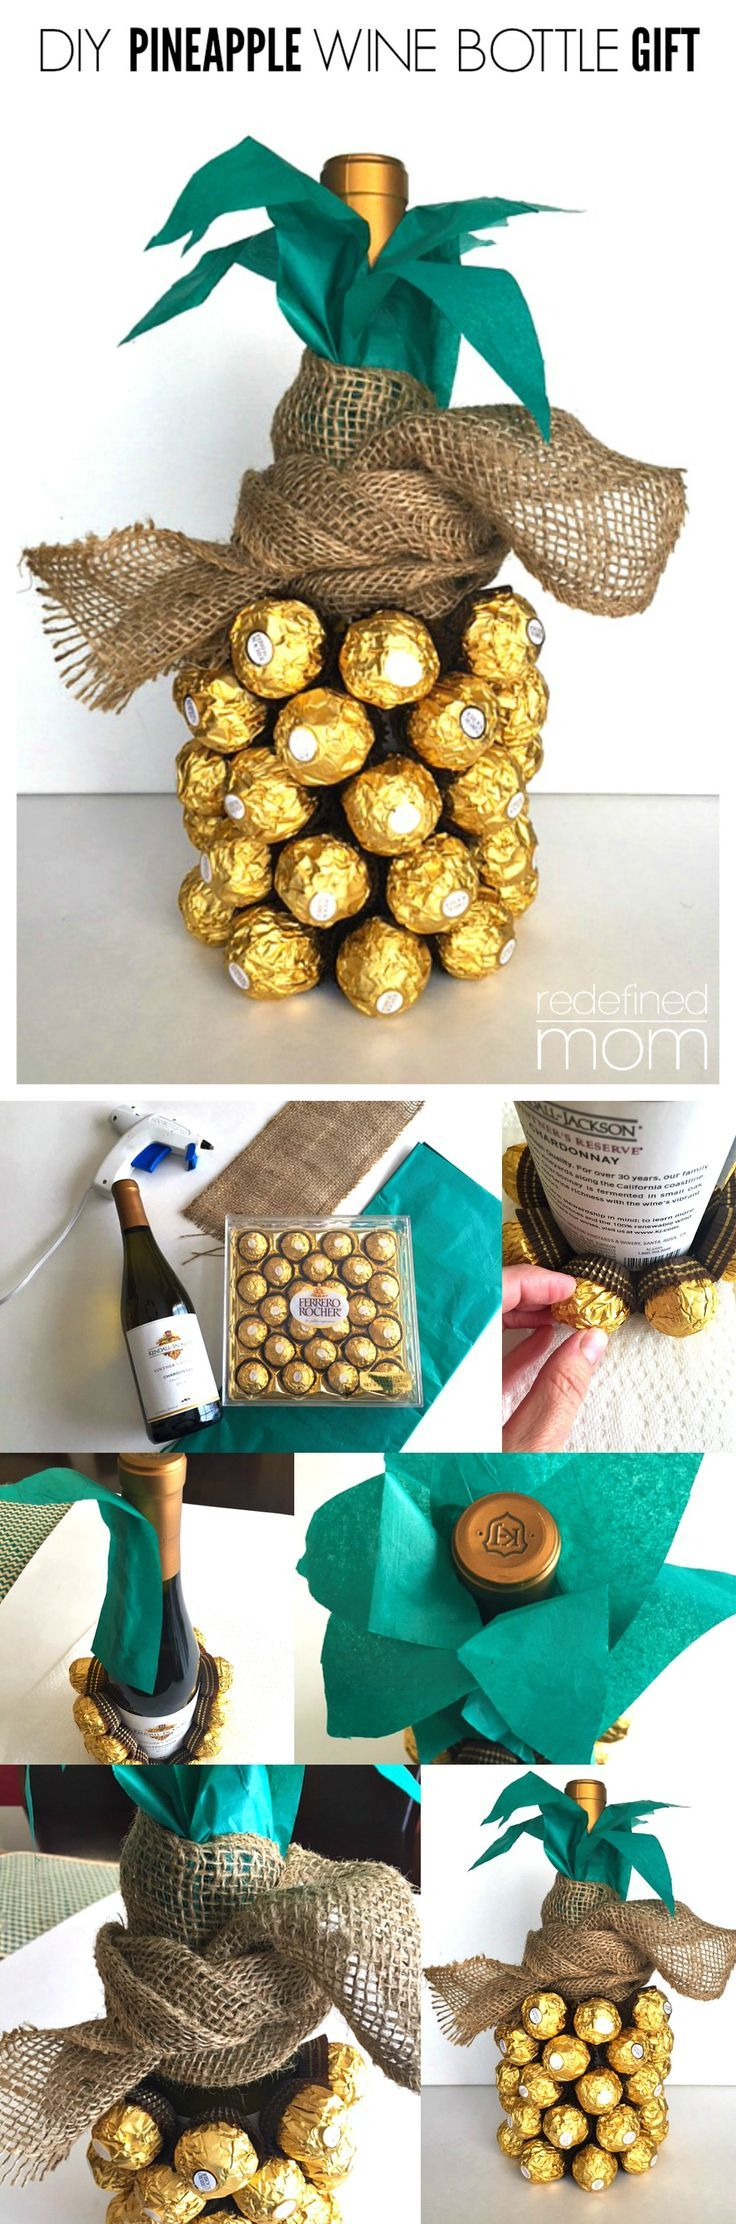 Best 25+ Work gifts ideas on Pinterest | Appreciation gifts, Staff ...